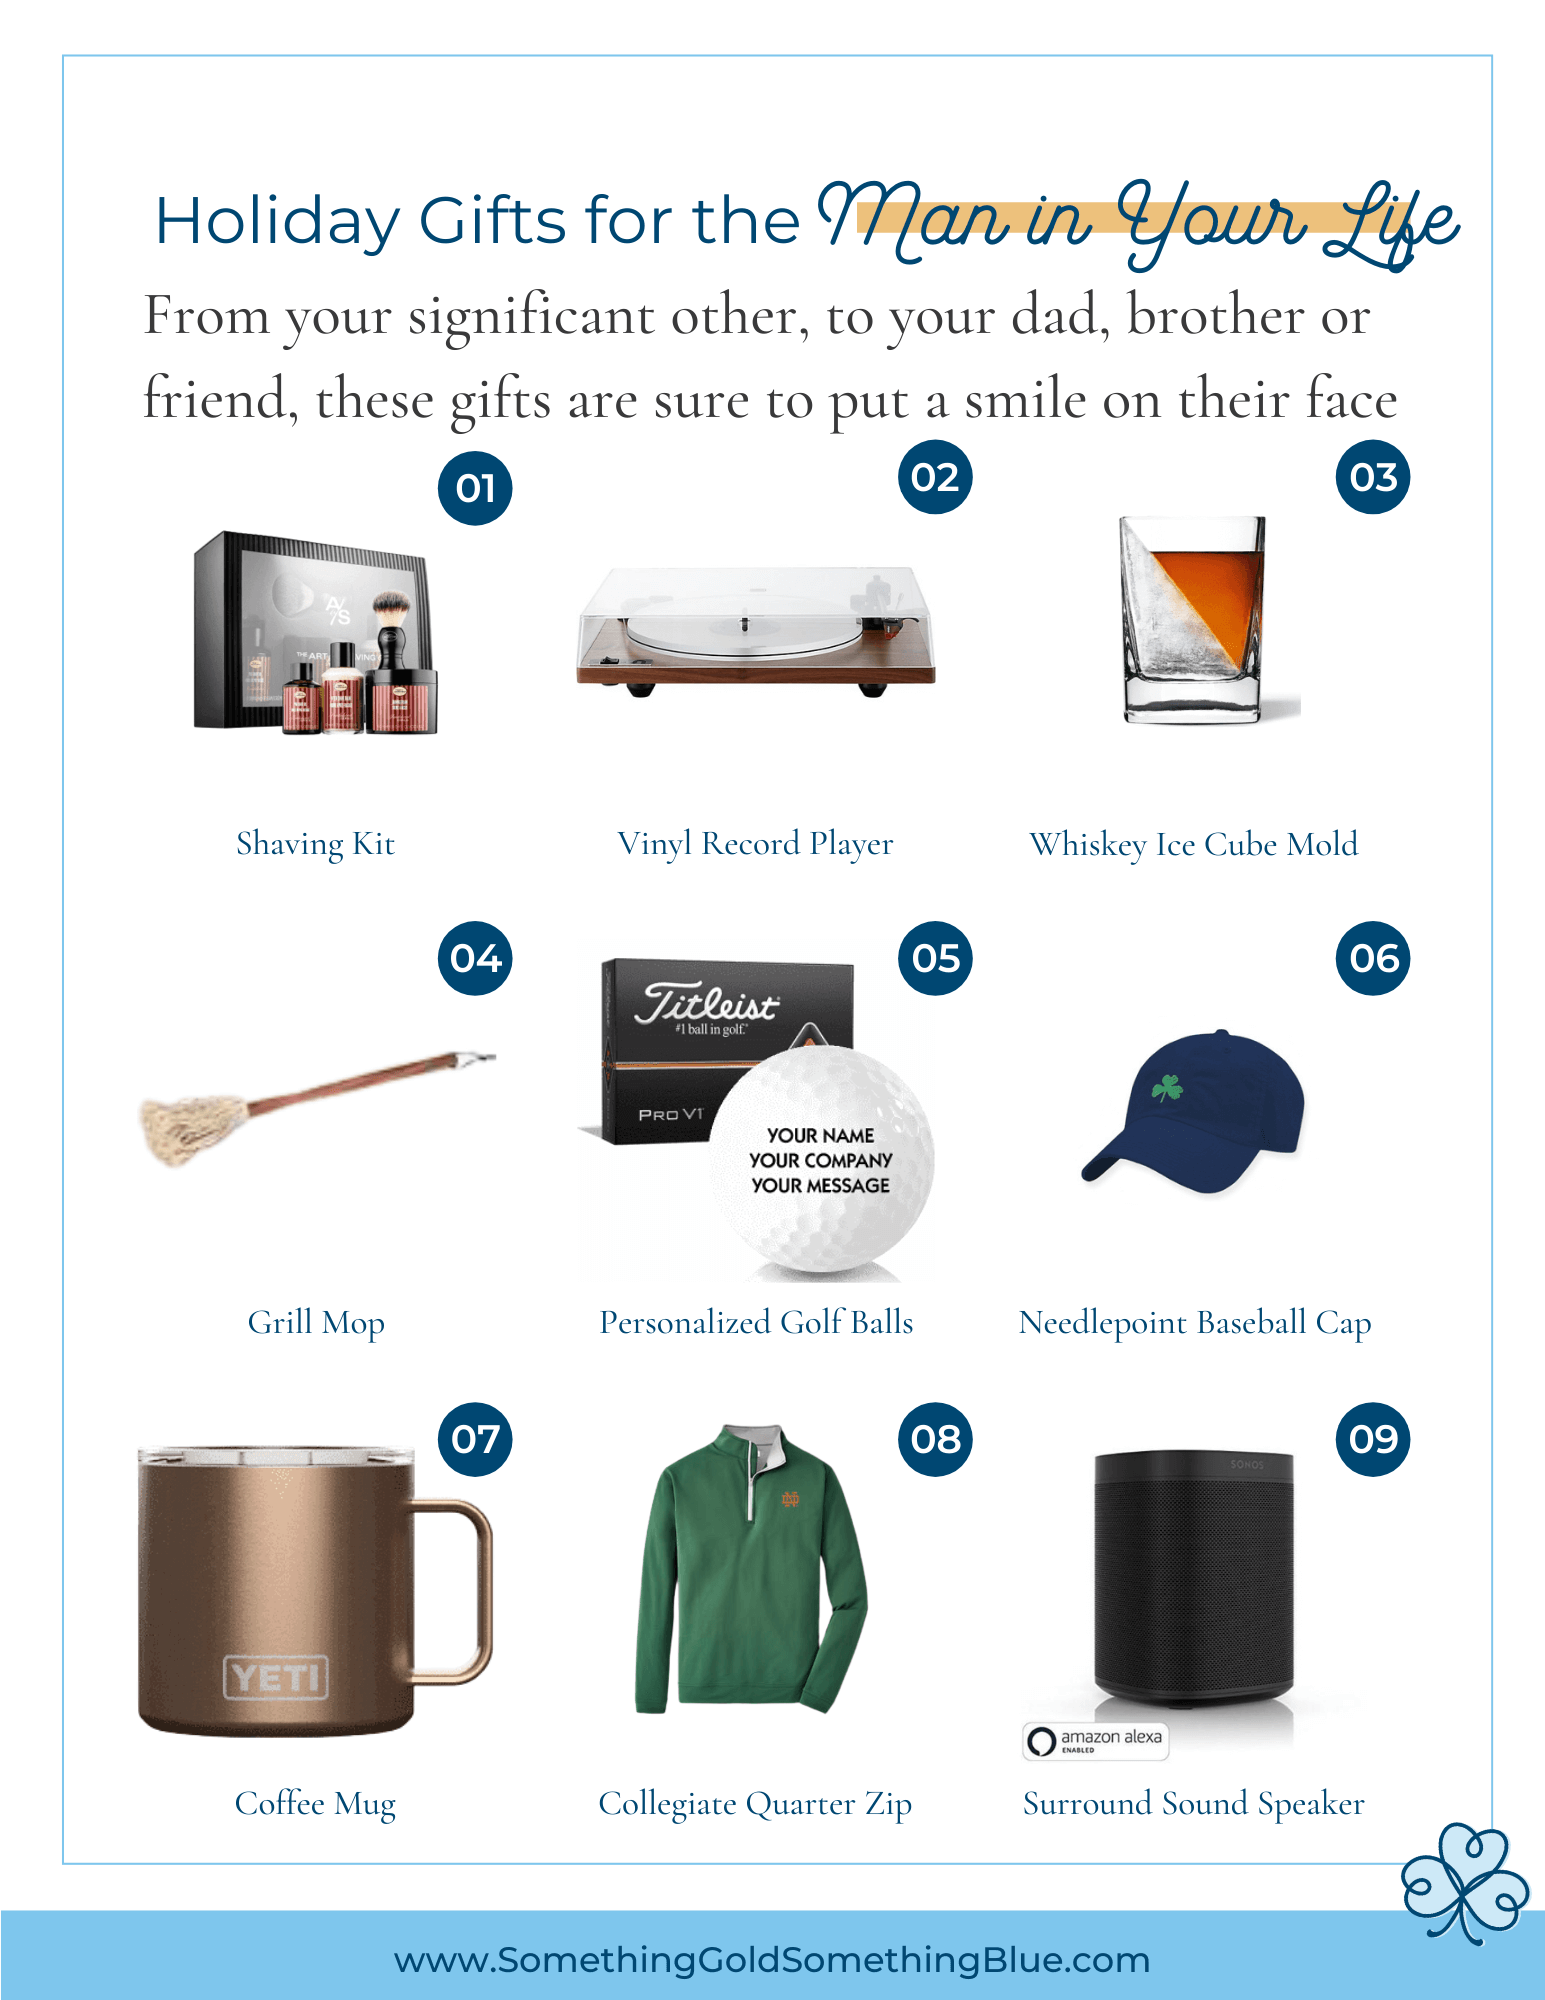 Holiday gift guide for the man in your life from your significant other to brother, dad or friend, they will love any of these items.